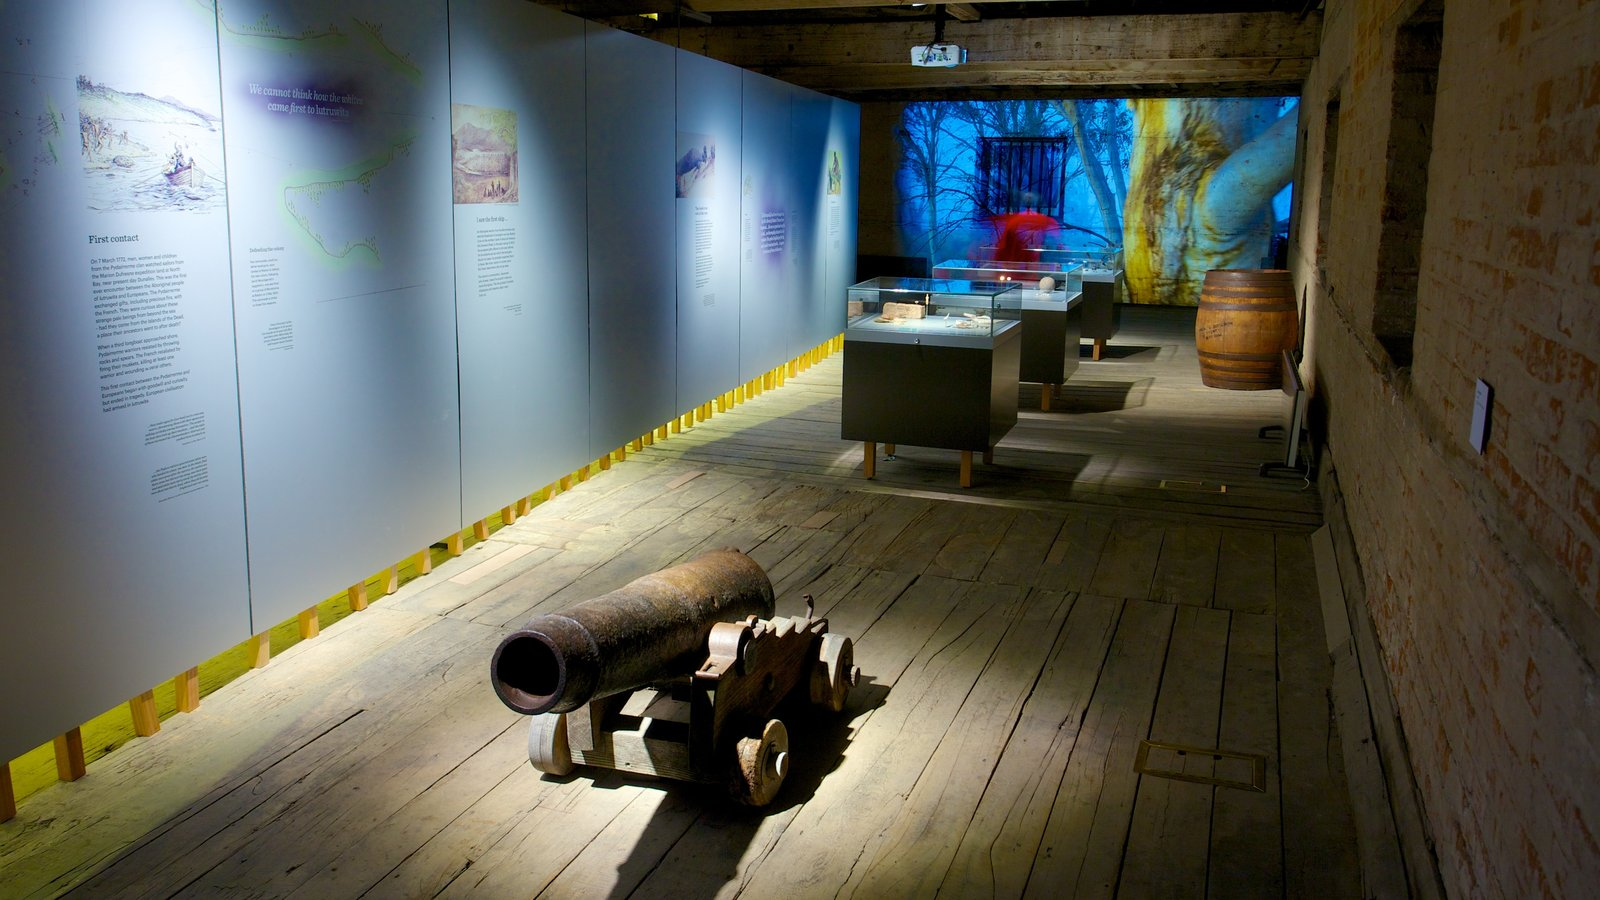 Tasmanian Museum and Art Gallery featuring interior views and art